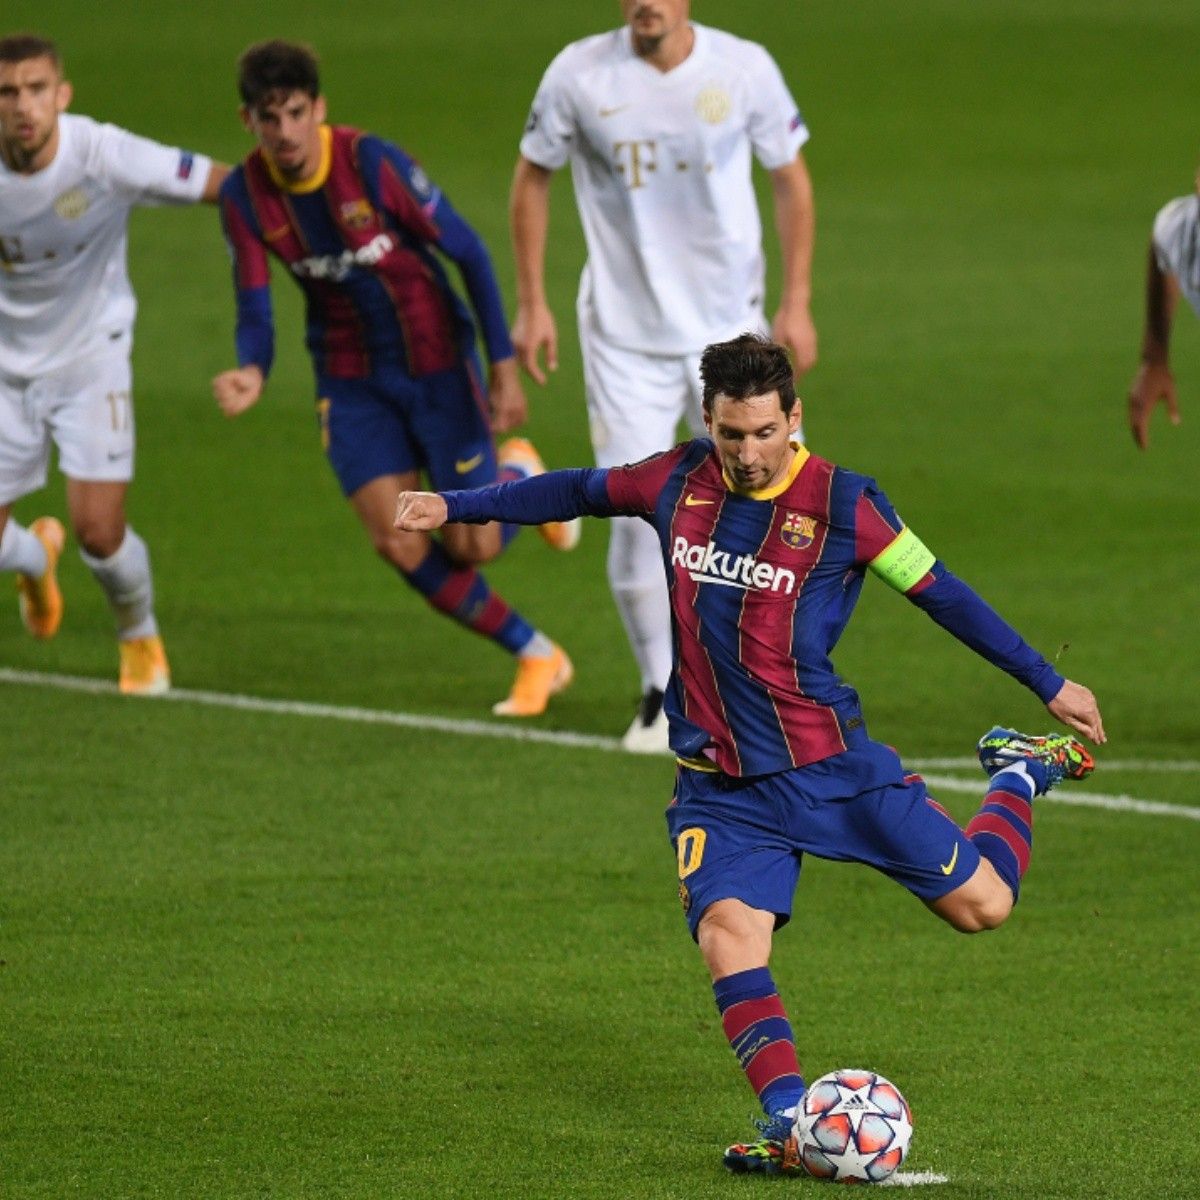 Barcelona Vs Ferencvaros Highlights And Goals Watch Here Barcelona S 5 1 Win In Uefa Champions League 2020 2021 Video Bolavip Us